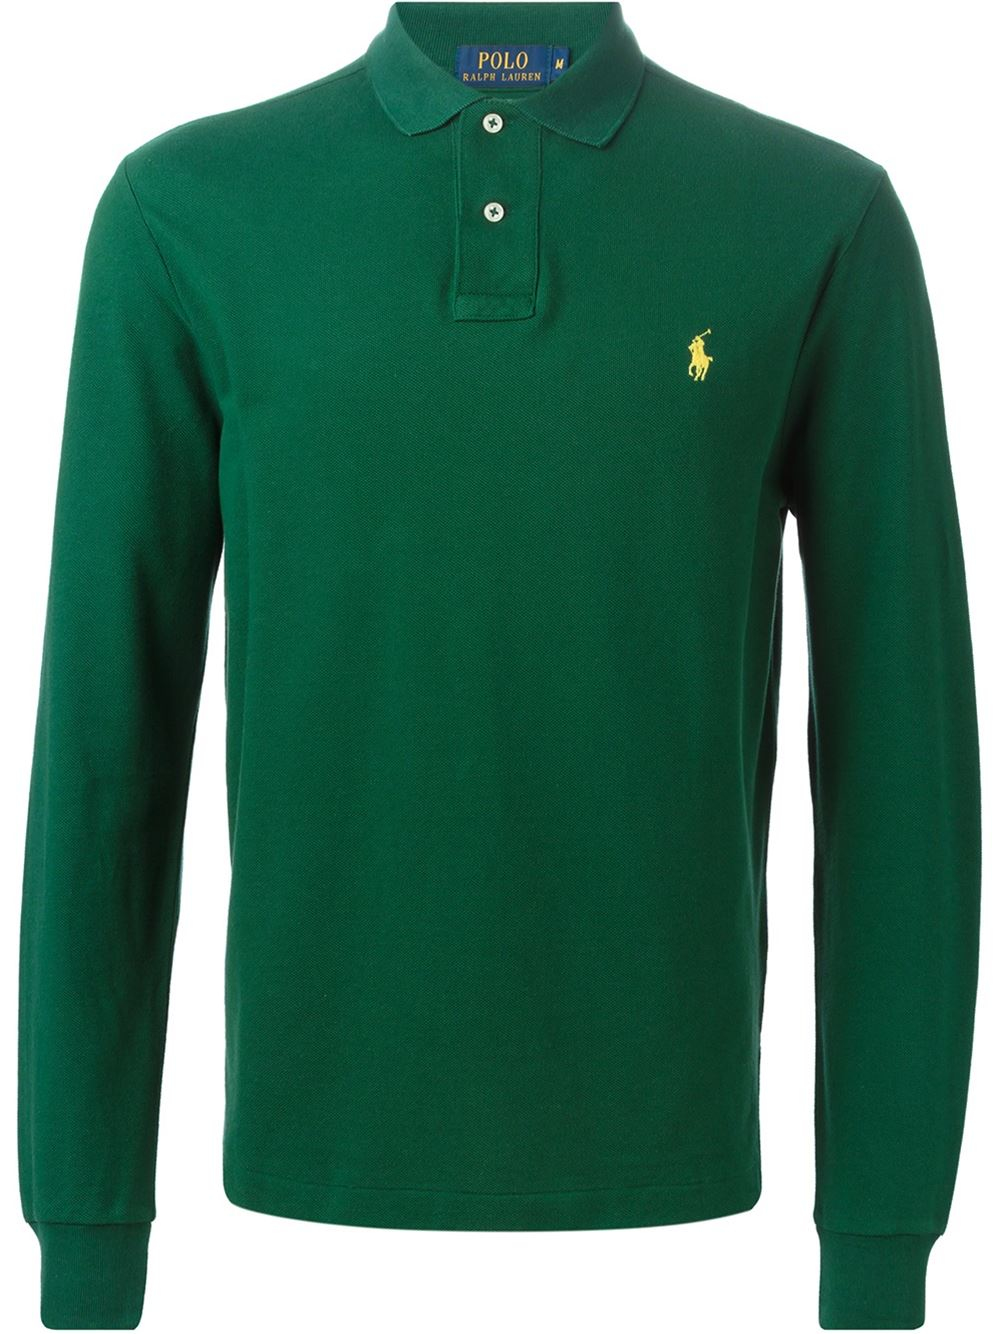 polo ralph lauren logo polo shirt in green for men lyst. Black Bedroom Furniture Sets. Home Design Ideas